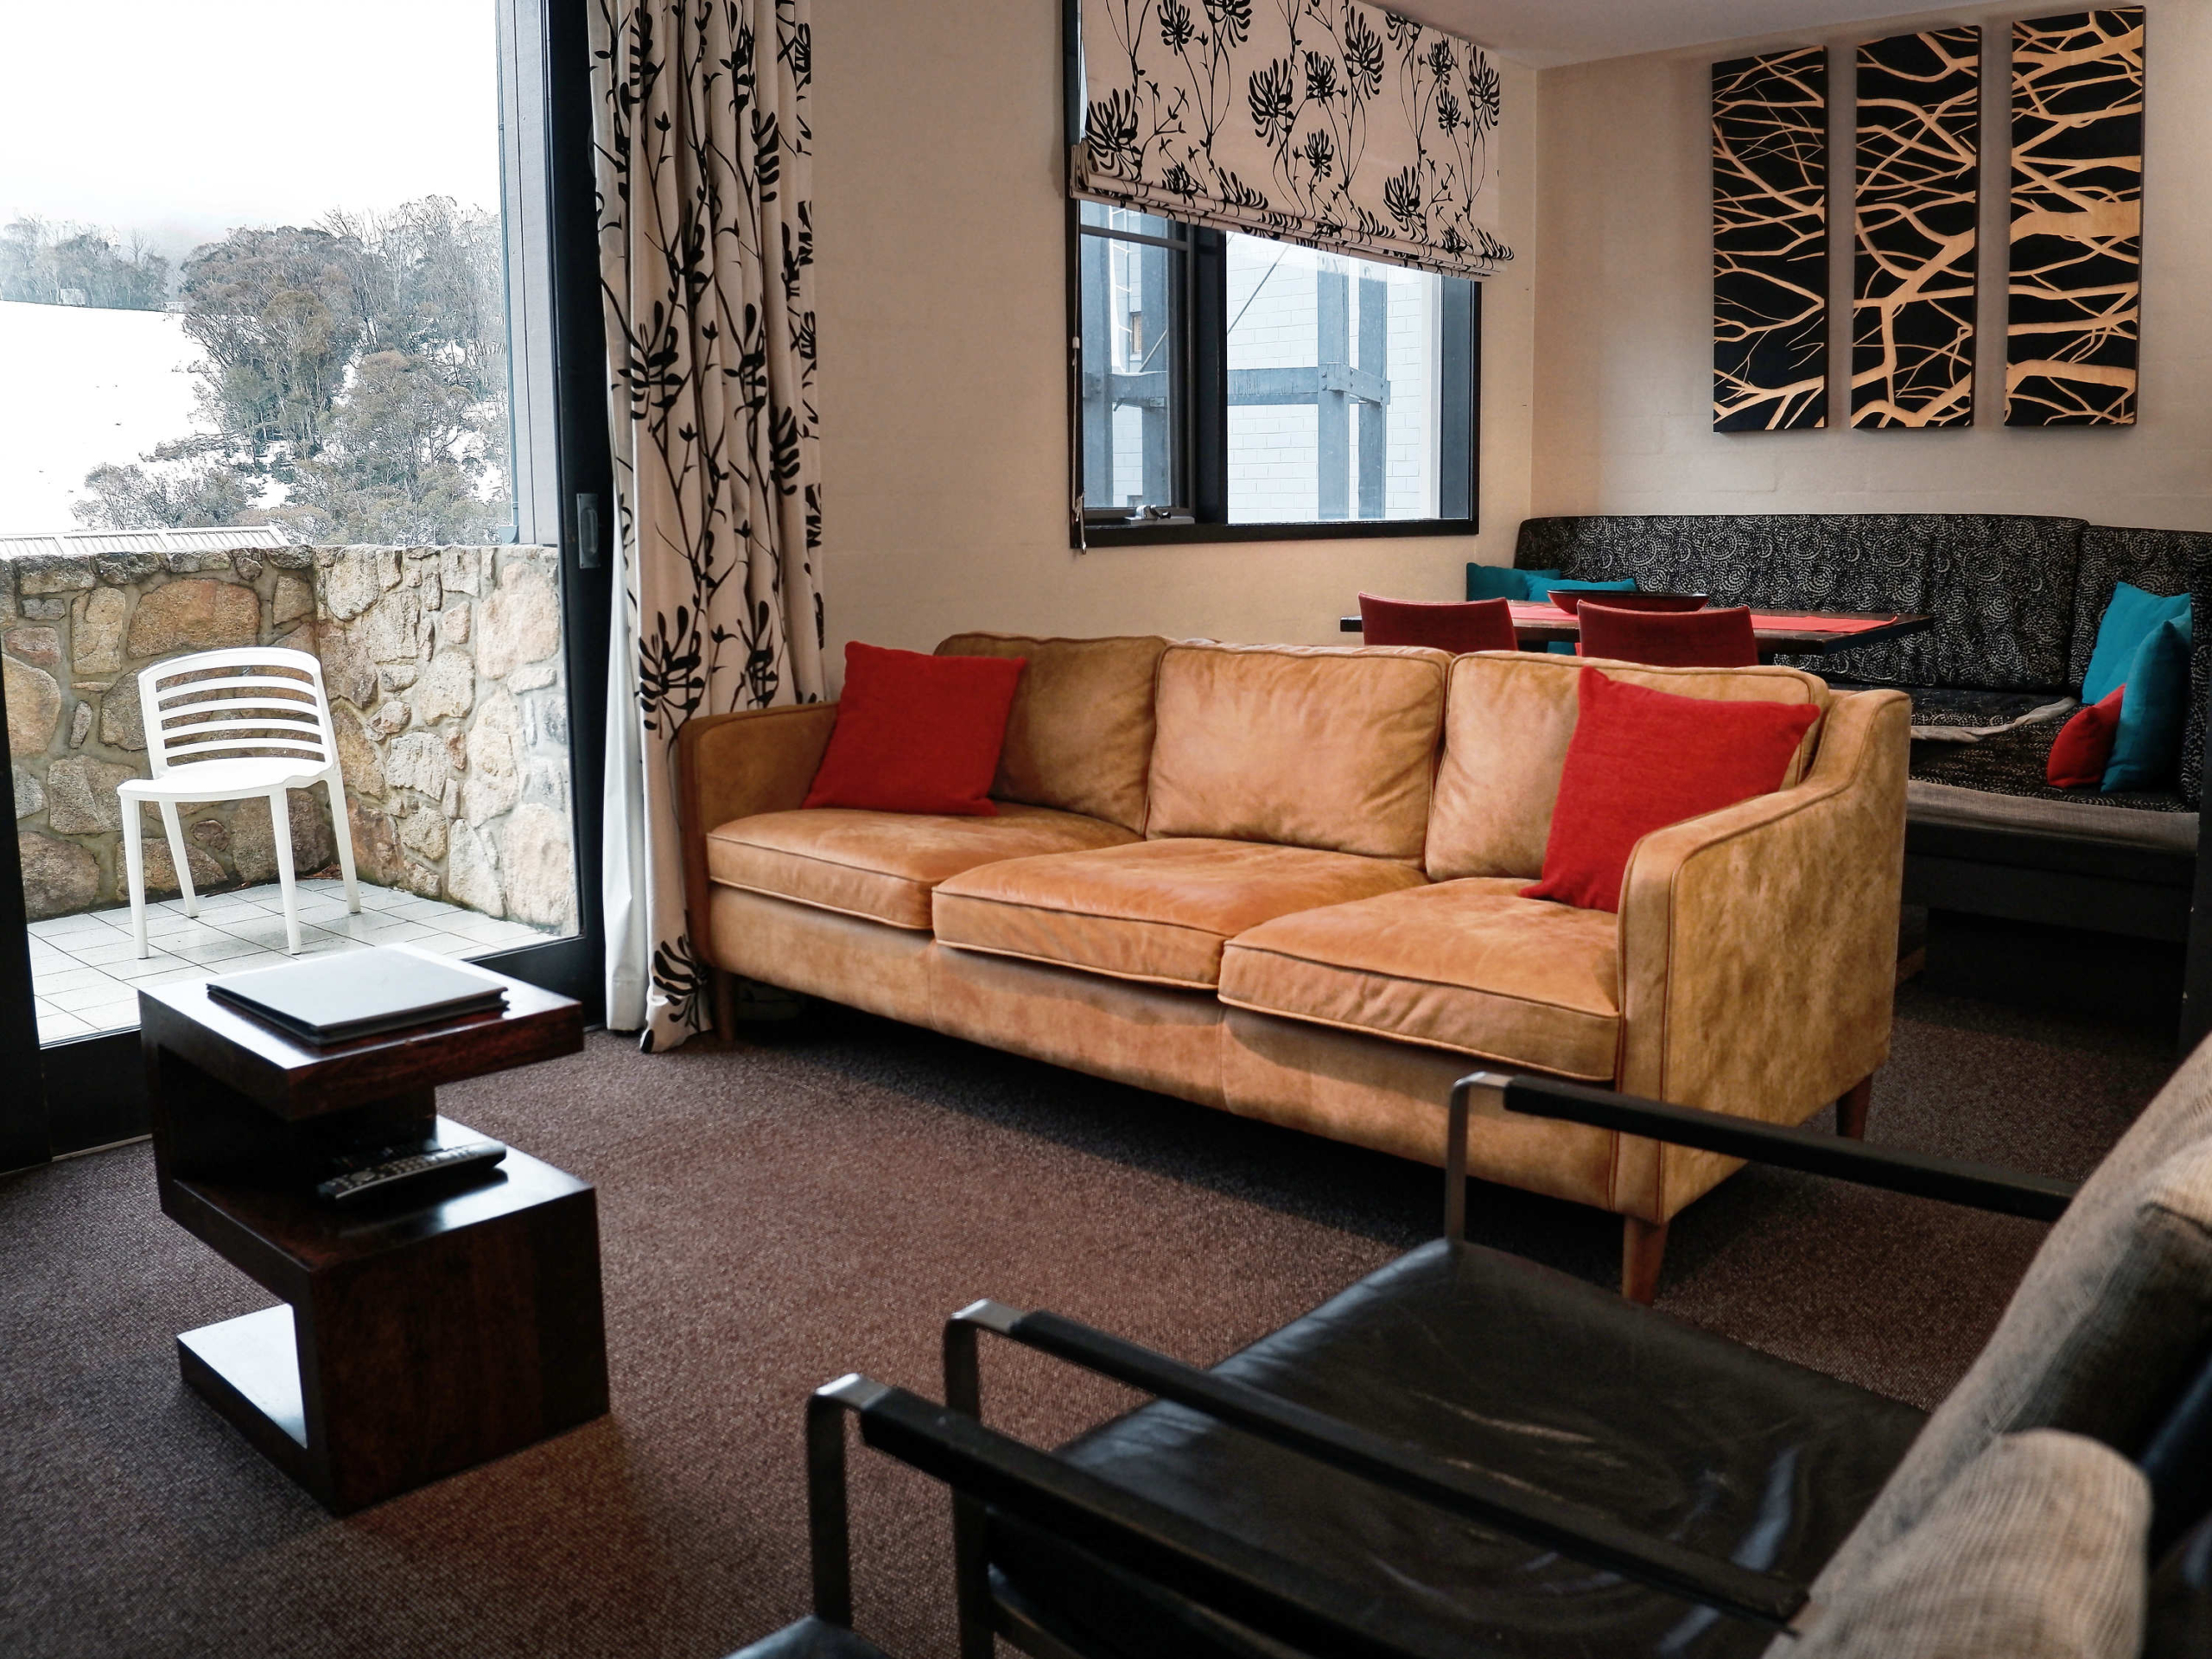 E6-Squatters-Run-Thredbo-Luxury-Apartments-Deluxe-1-Bedroom-Unit-234-persons-see-squatters.com_.au_-2-scaled